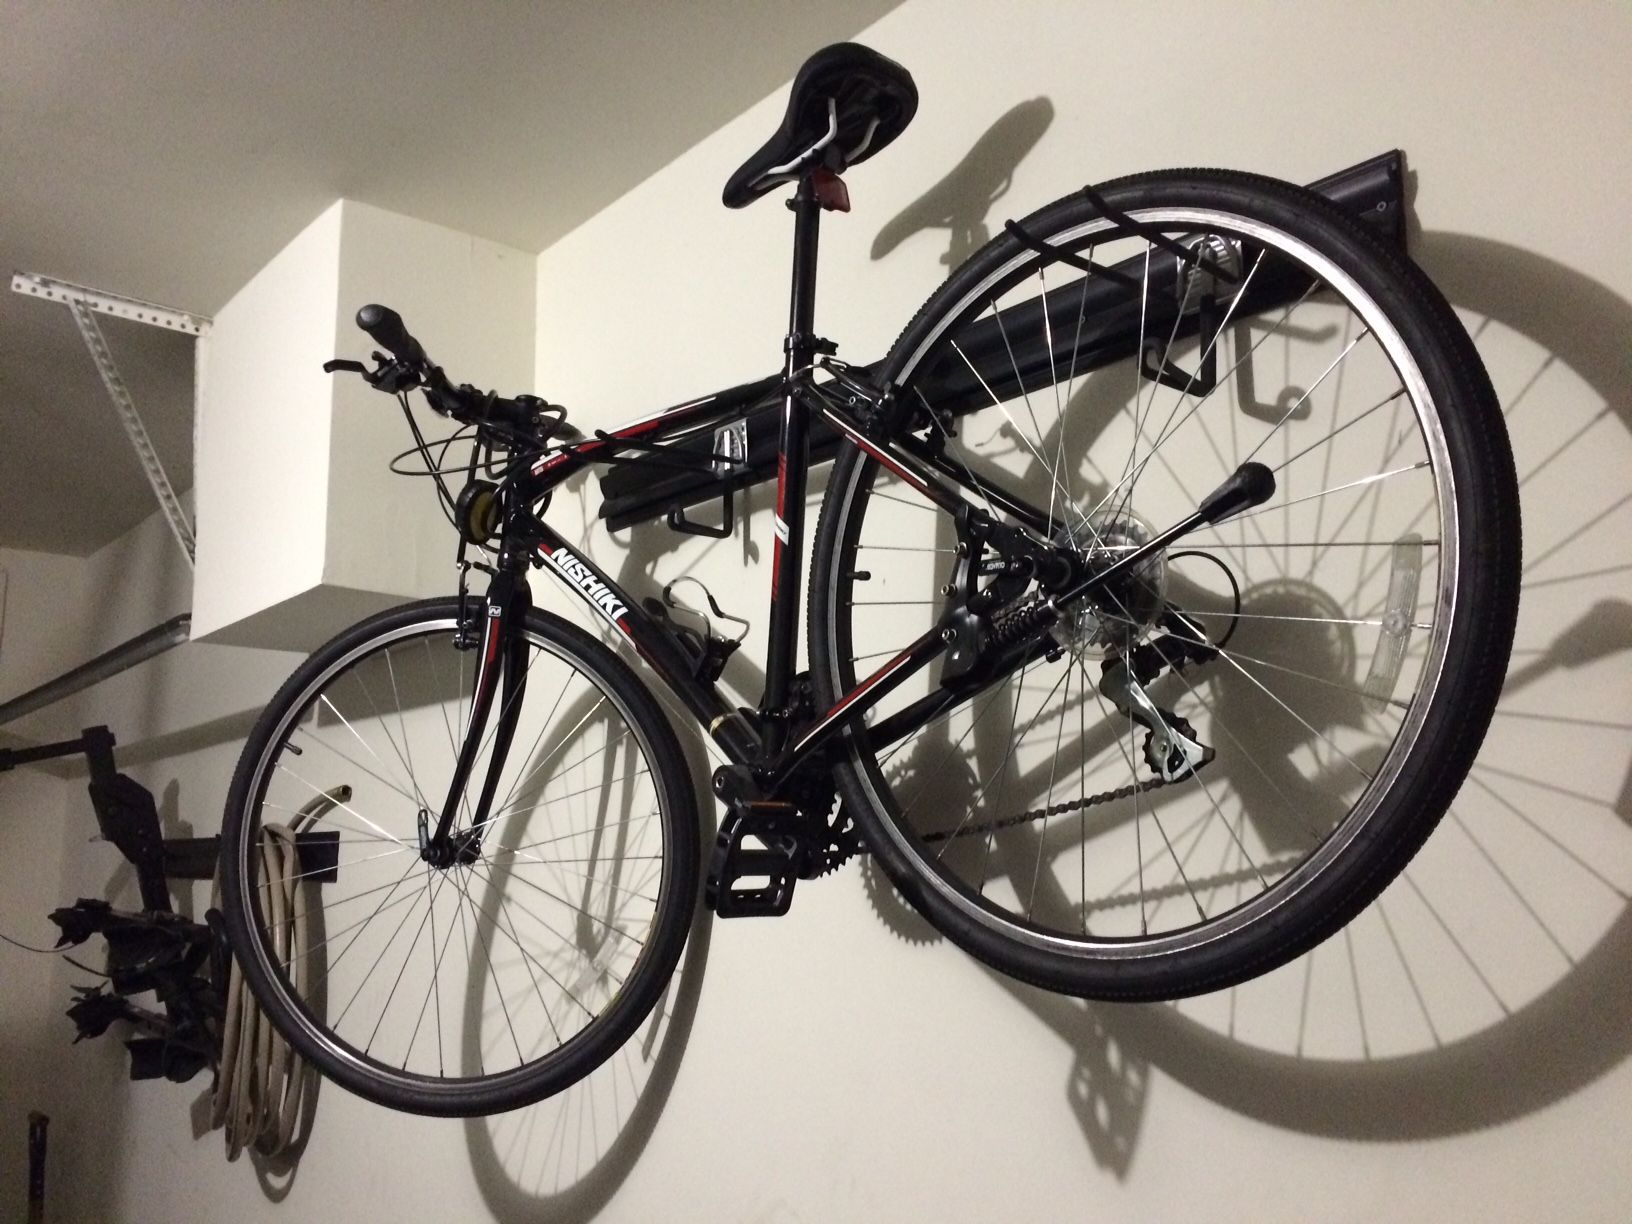 Bike Rack For The Garage Garage Bike Racks Diy Using Kobalt K Rail And Hook Storage System